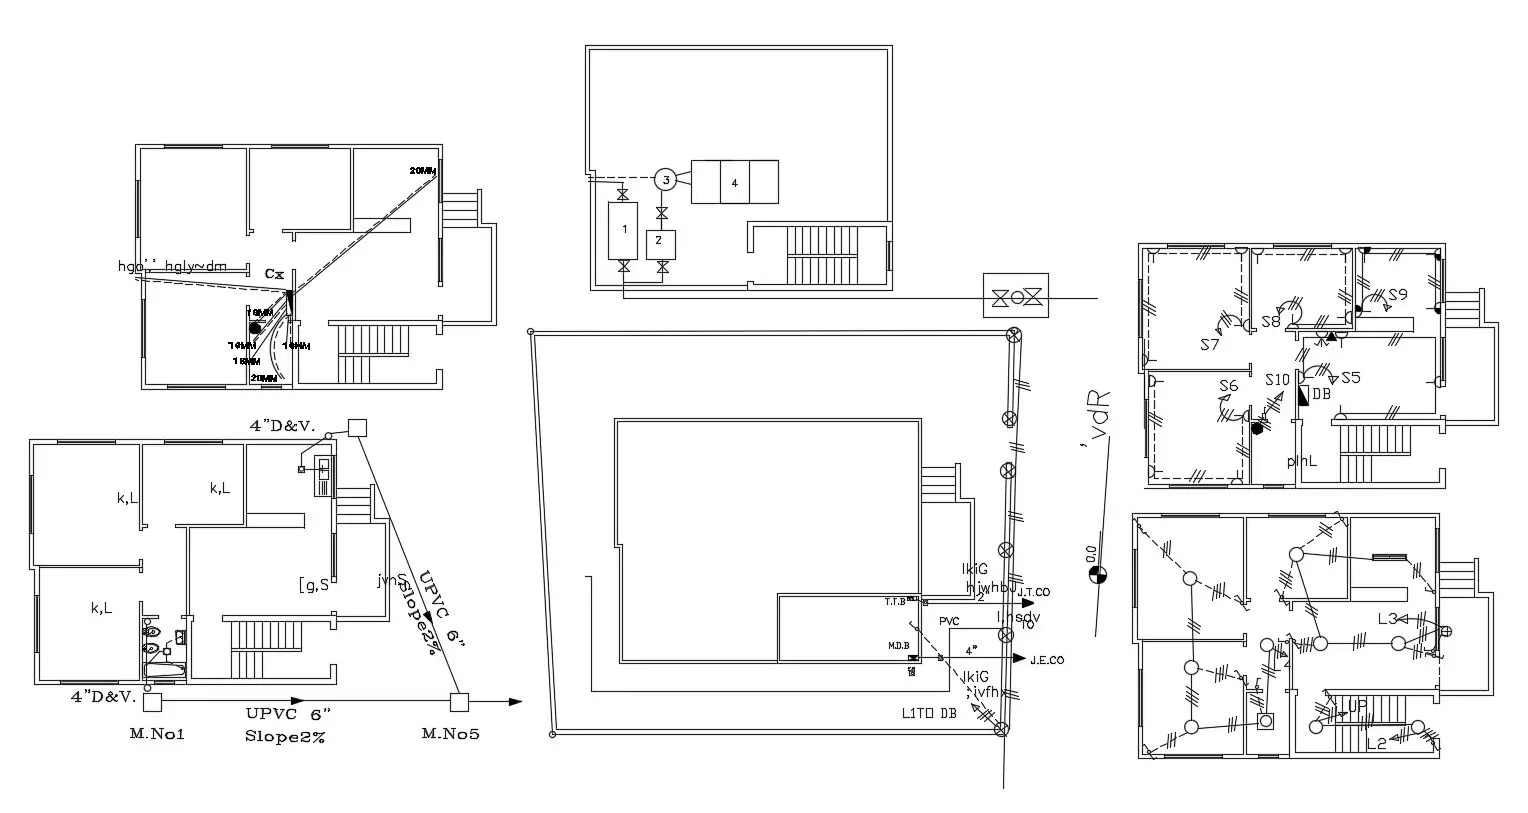 Plumbing And Electrical Layout Plan Cad File